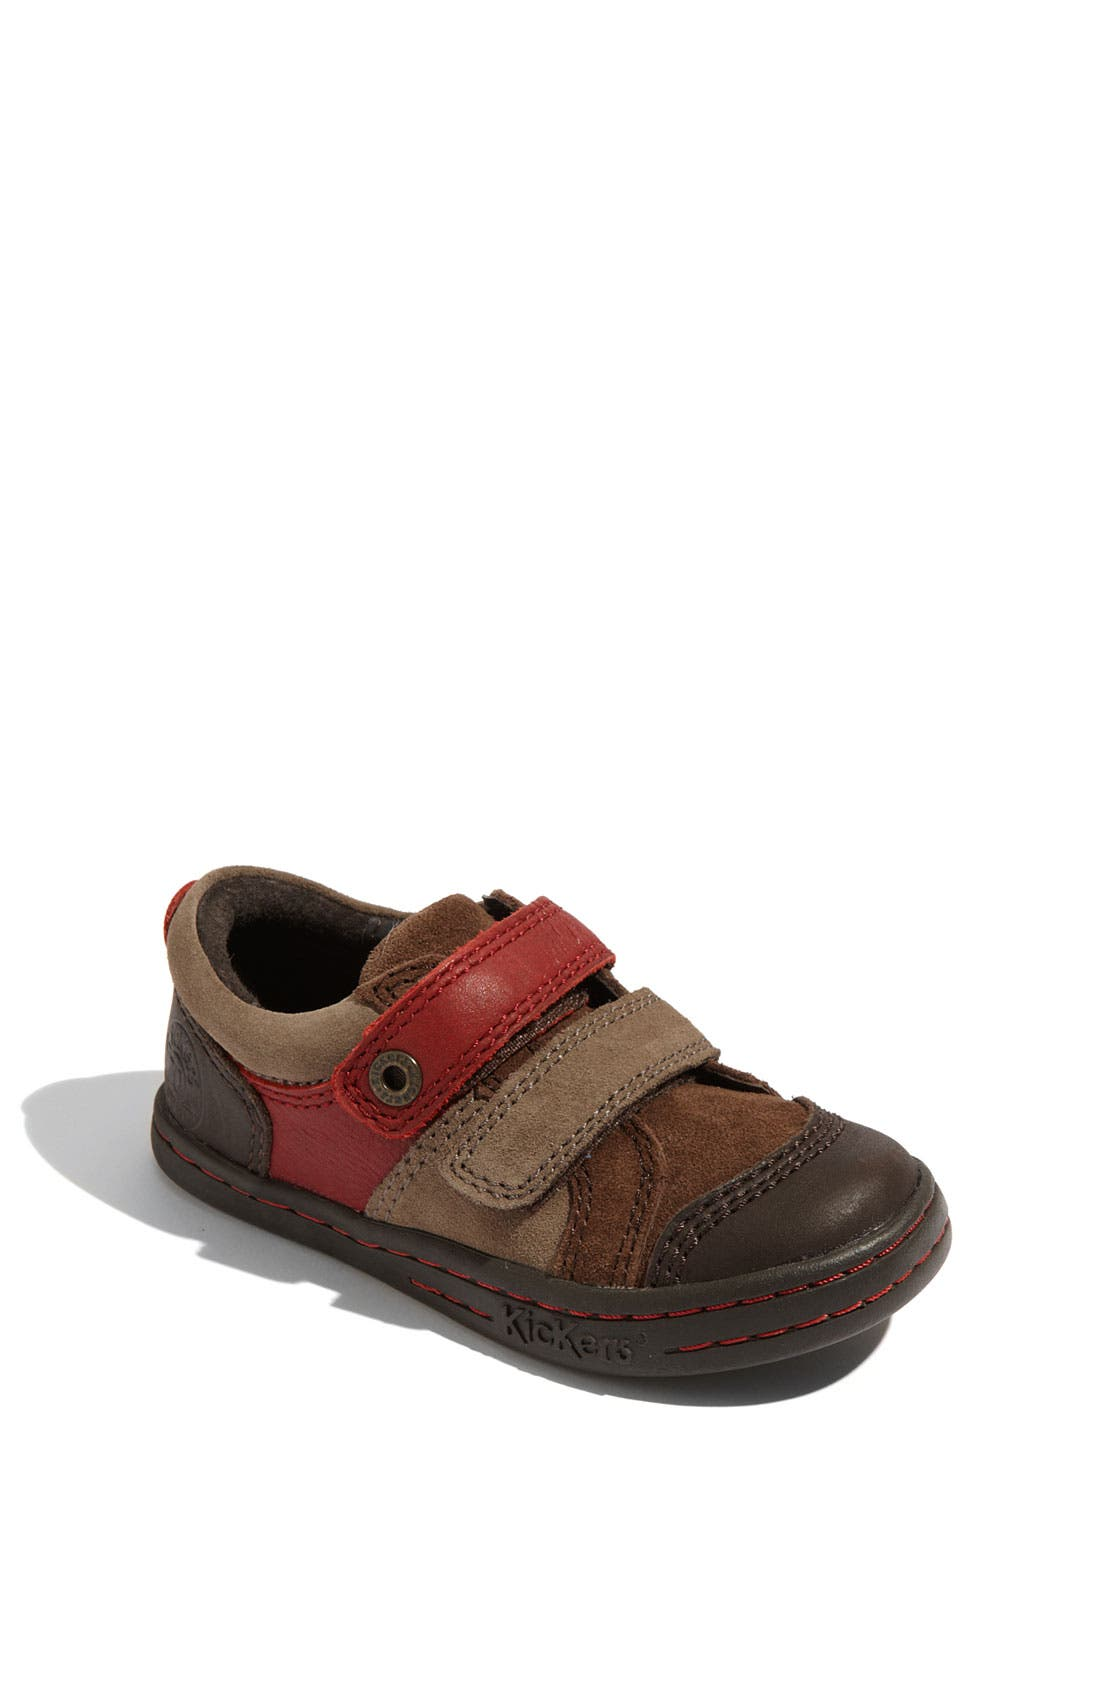 Main Image - Kickers 'Jump' Shoe (Toddler)